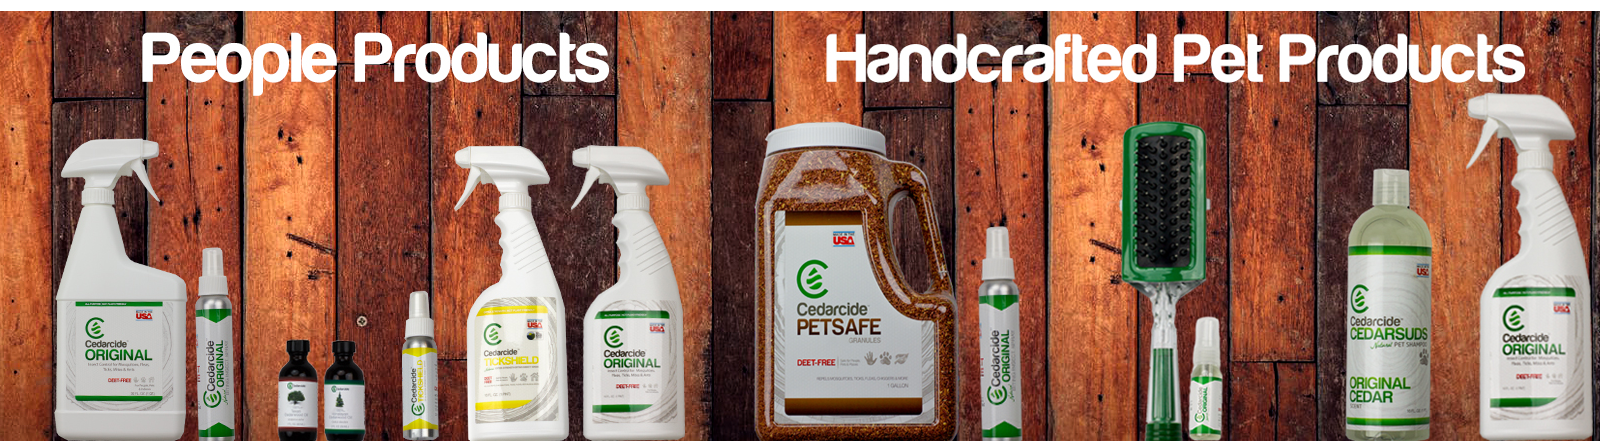 cedarcide products